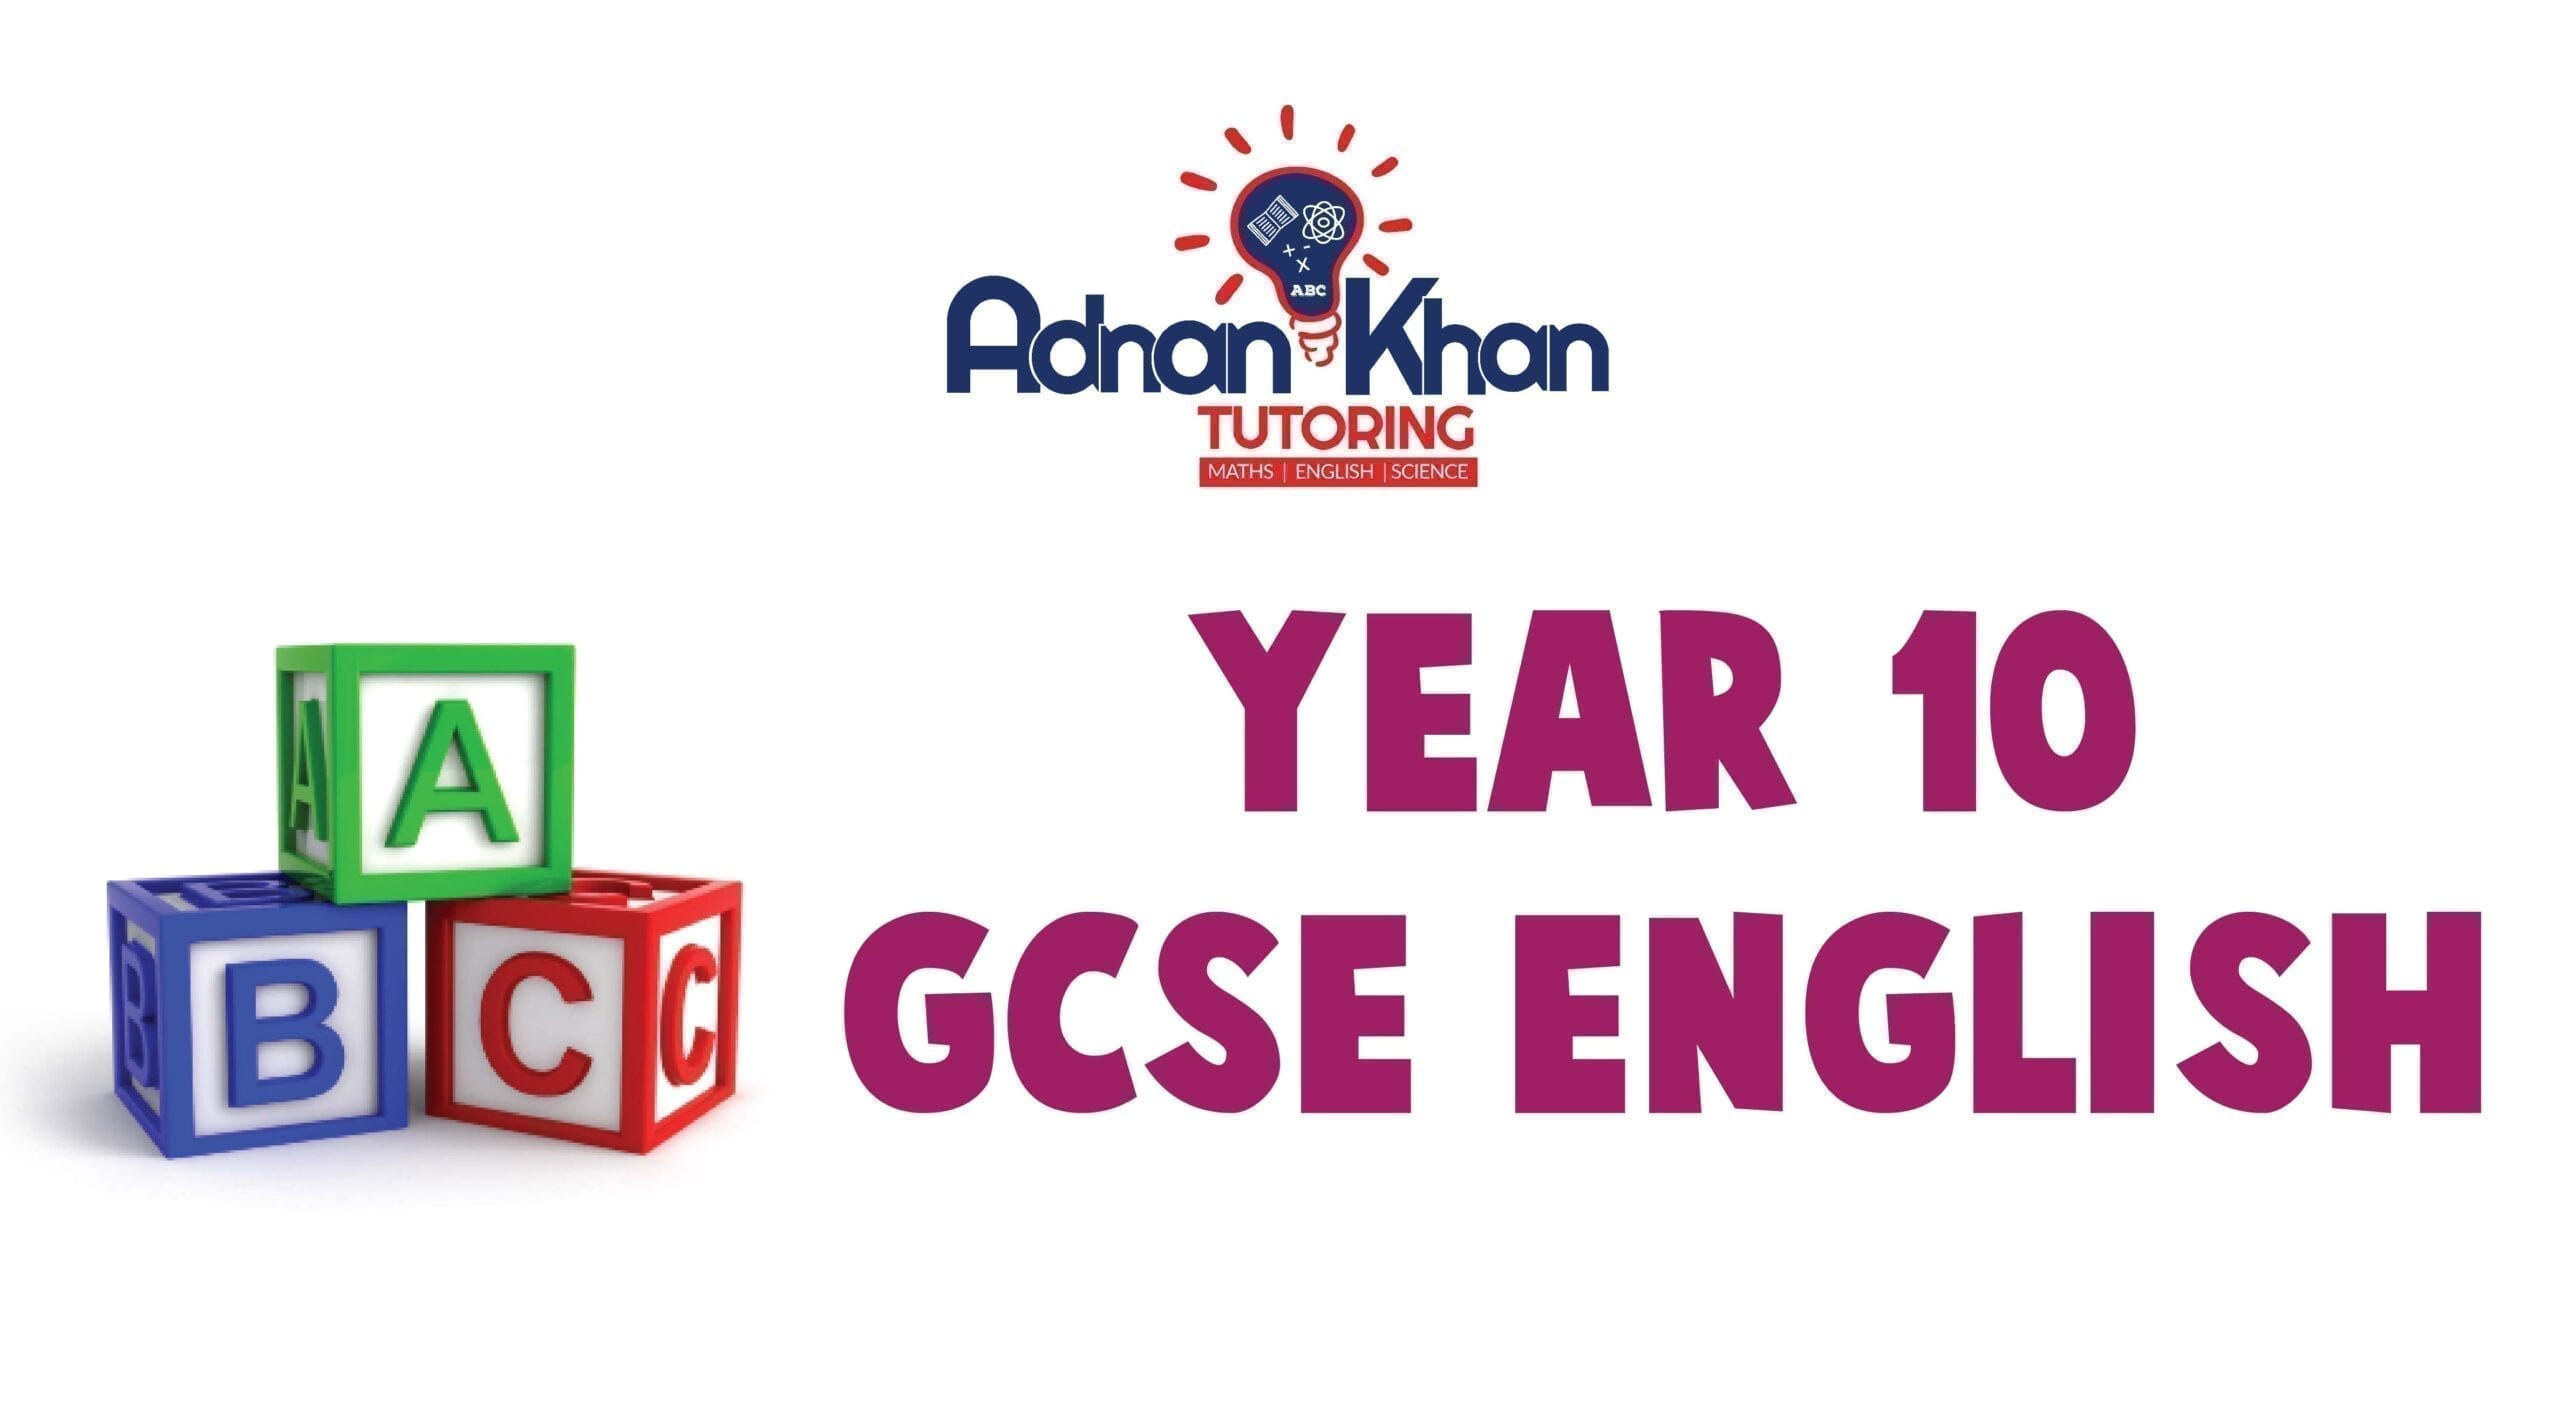 GCSE ENGLISH Year 10 Adnan Khan Tutoring